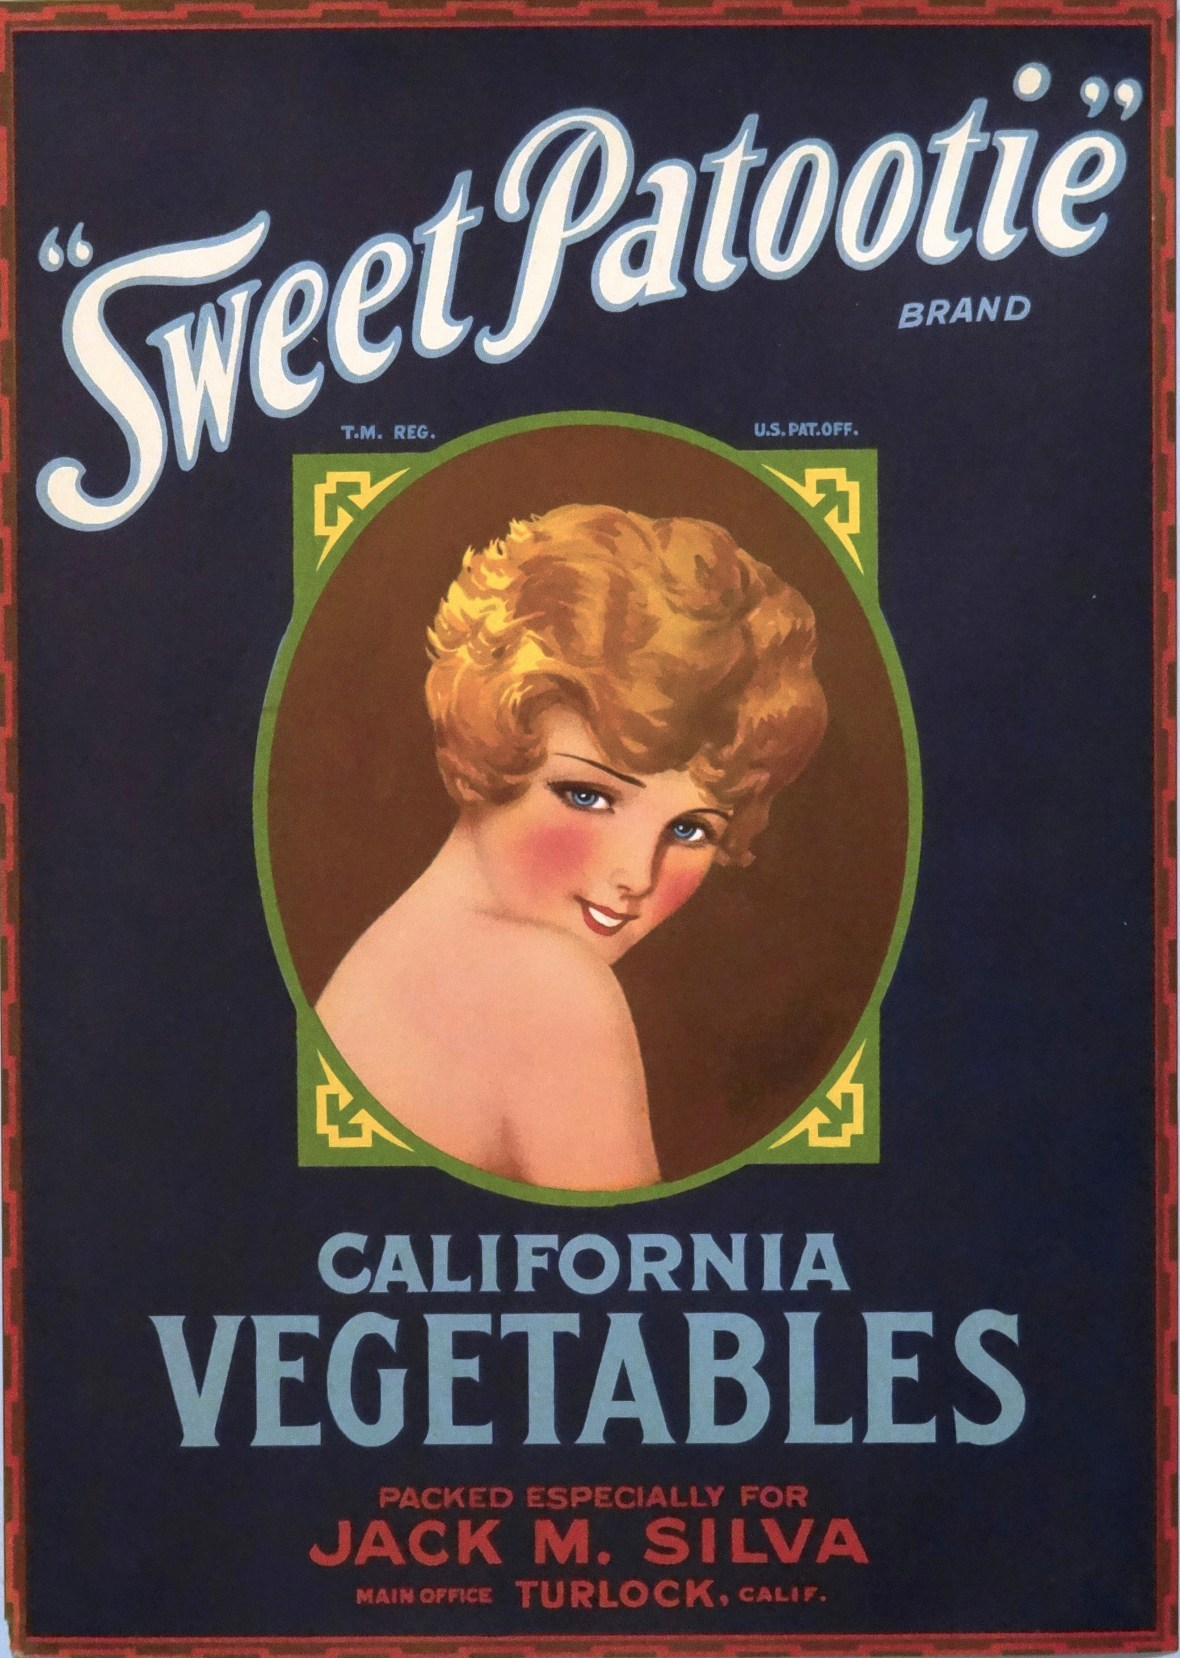 Sweet Patootie California Vegetables - 1920's